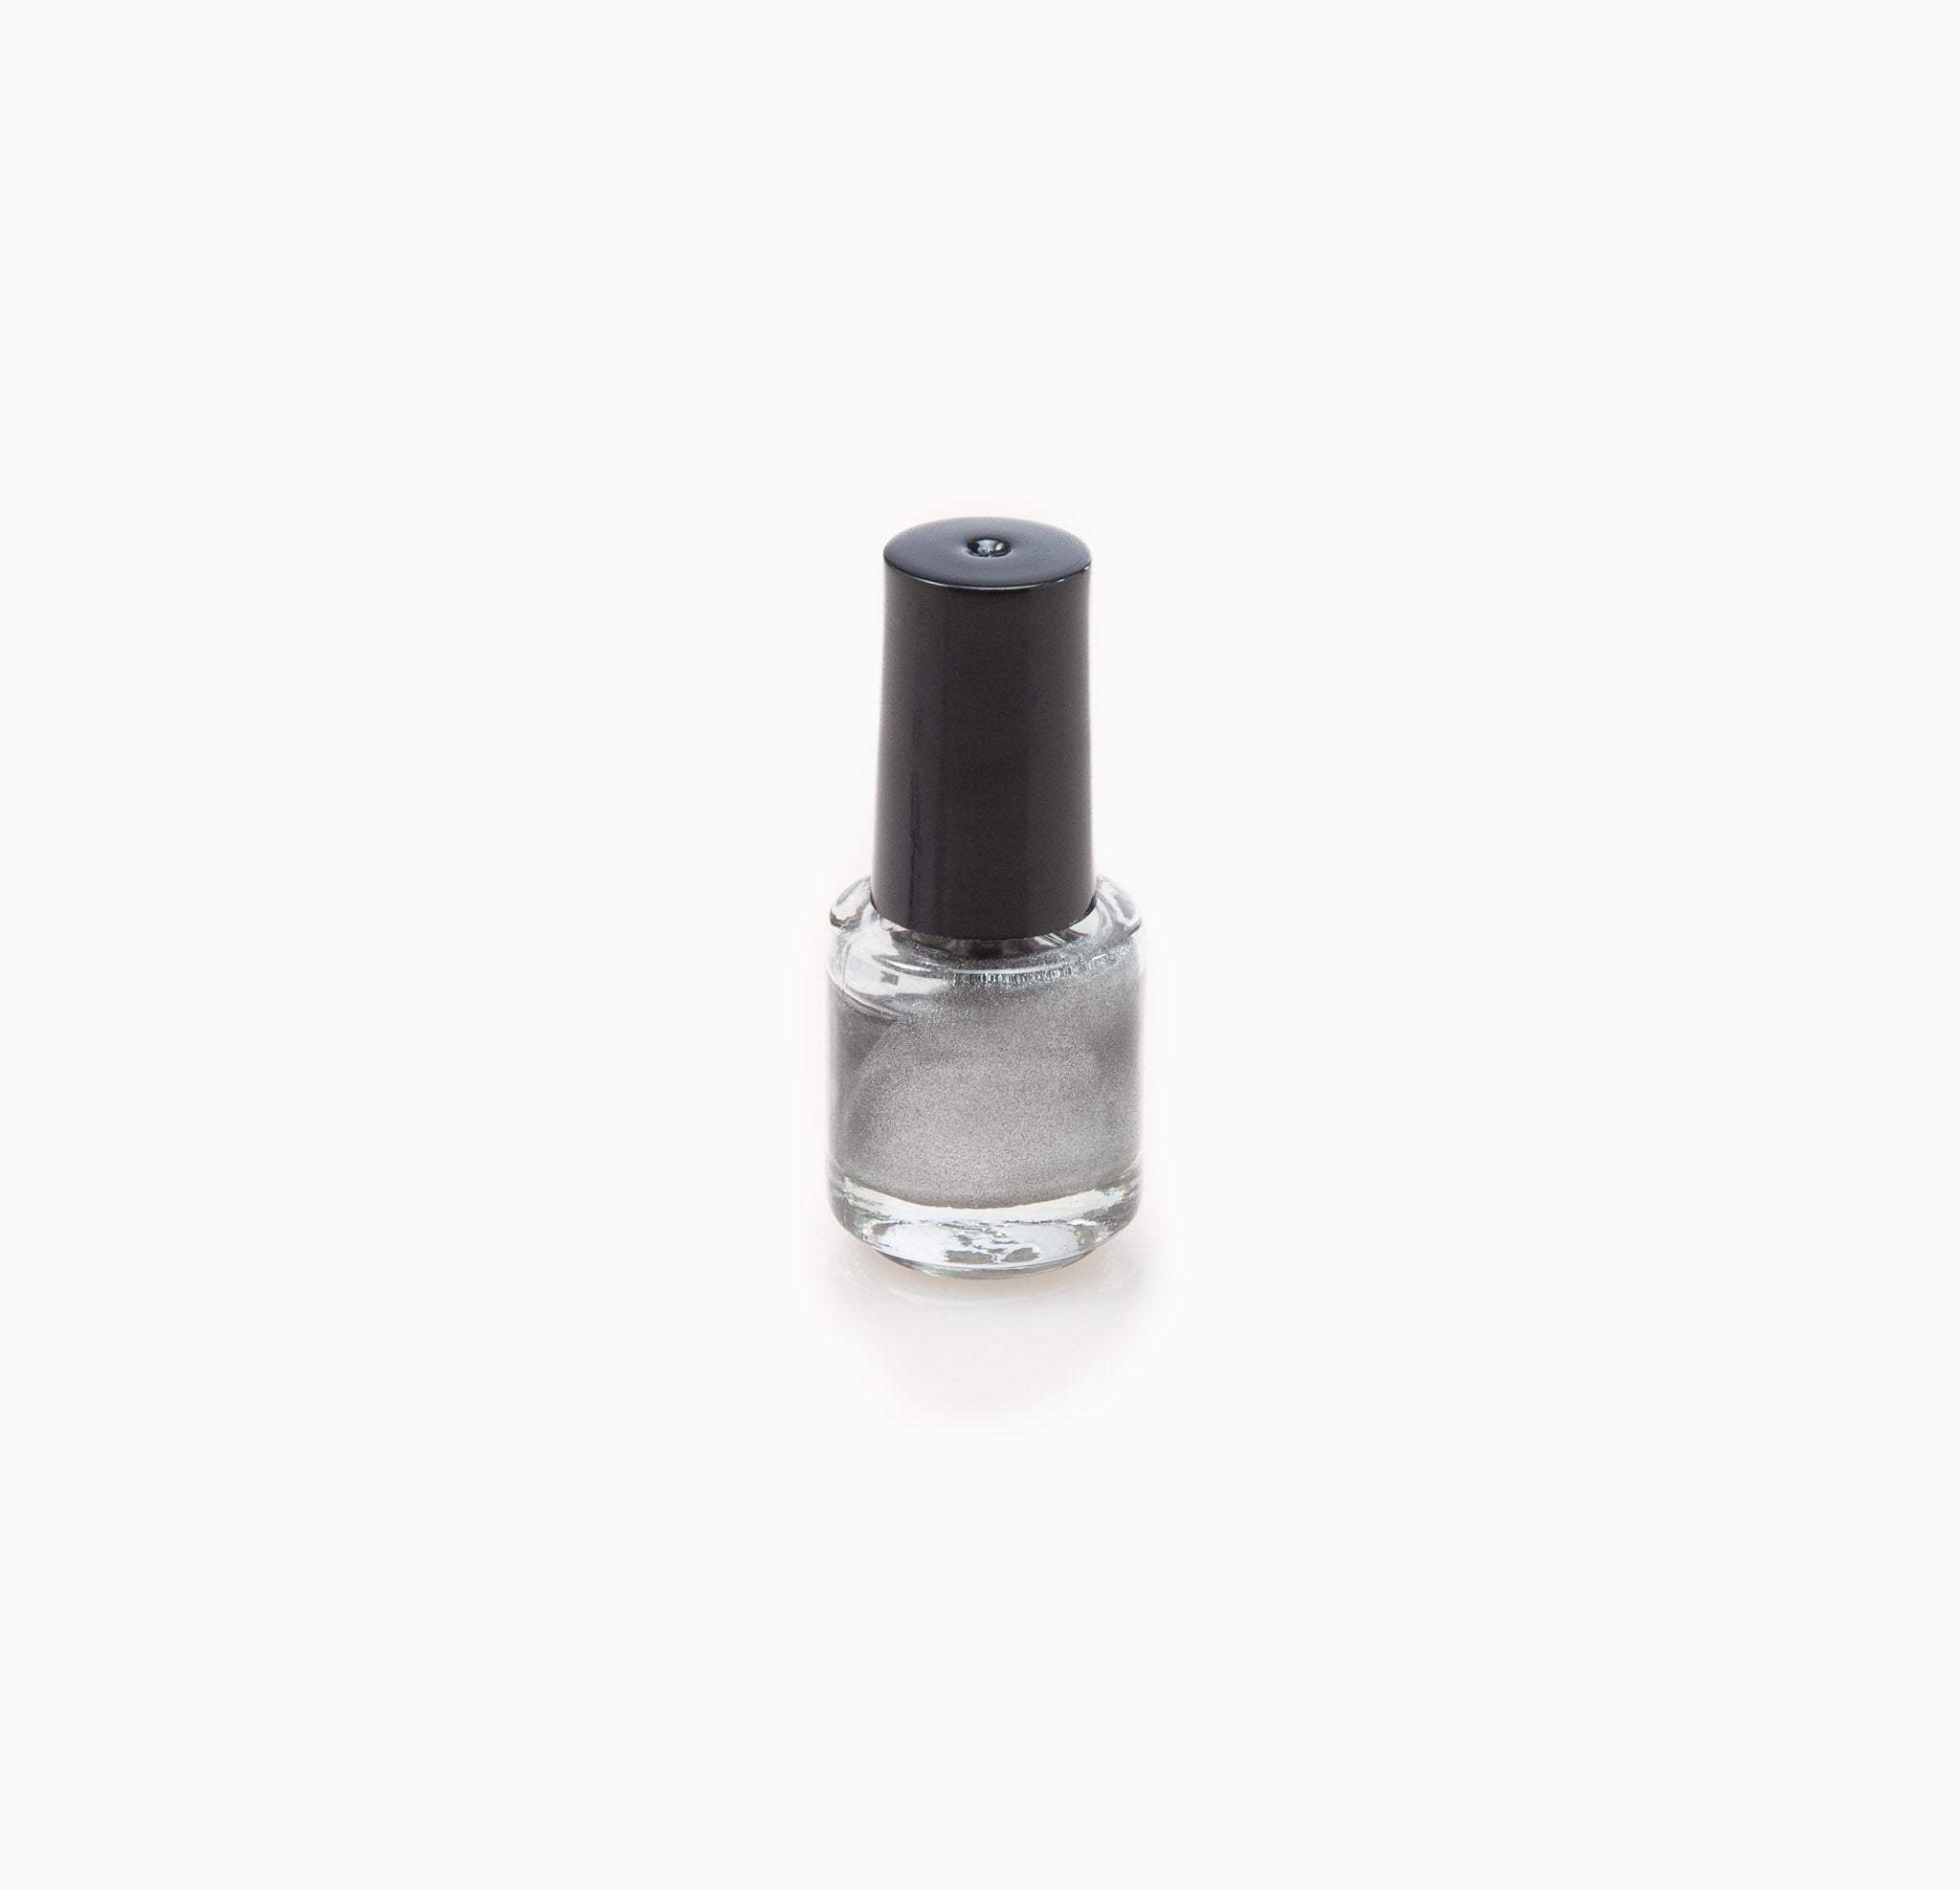 Paint, Insurgent LB Freddy Mercury touch-up paint, 5mL